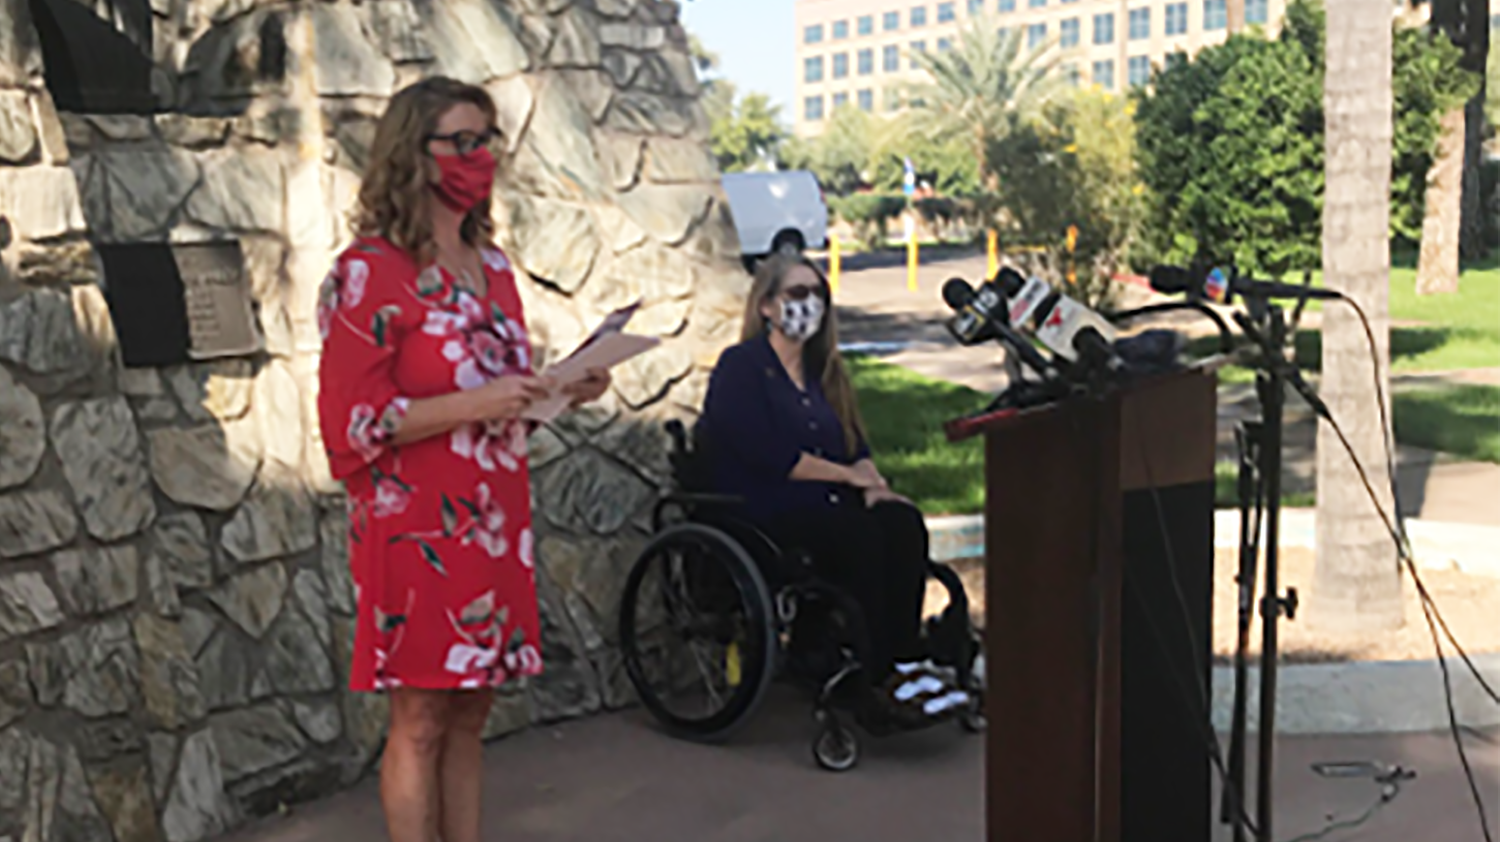 Dana Marie Kennedy speaks at a press conference